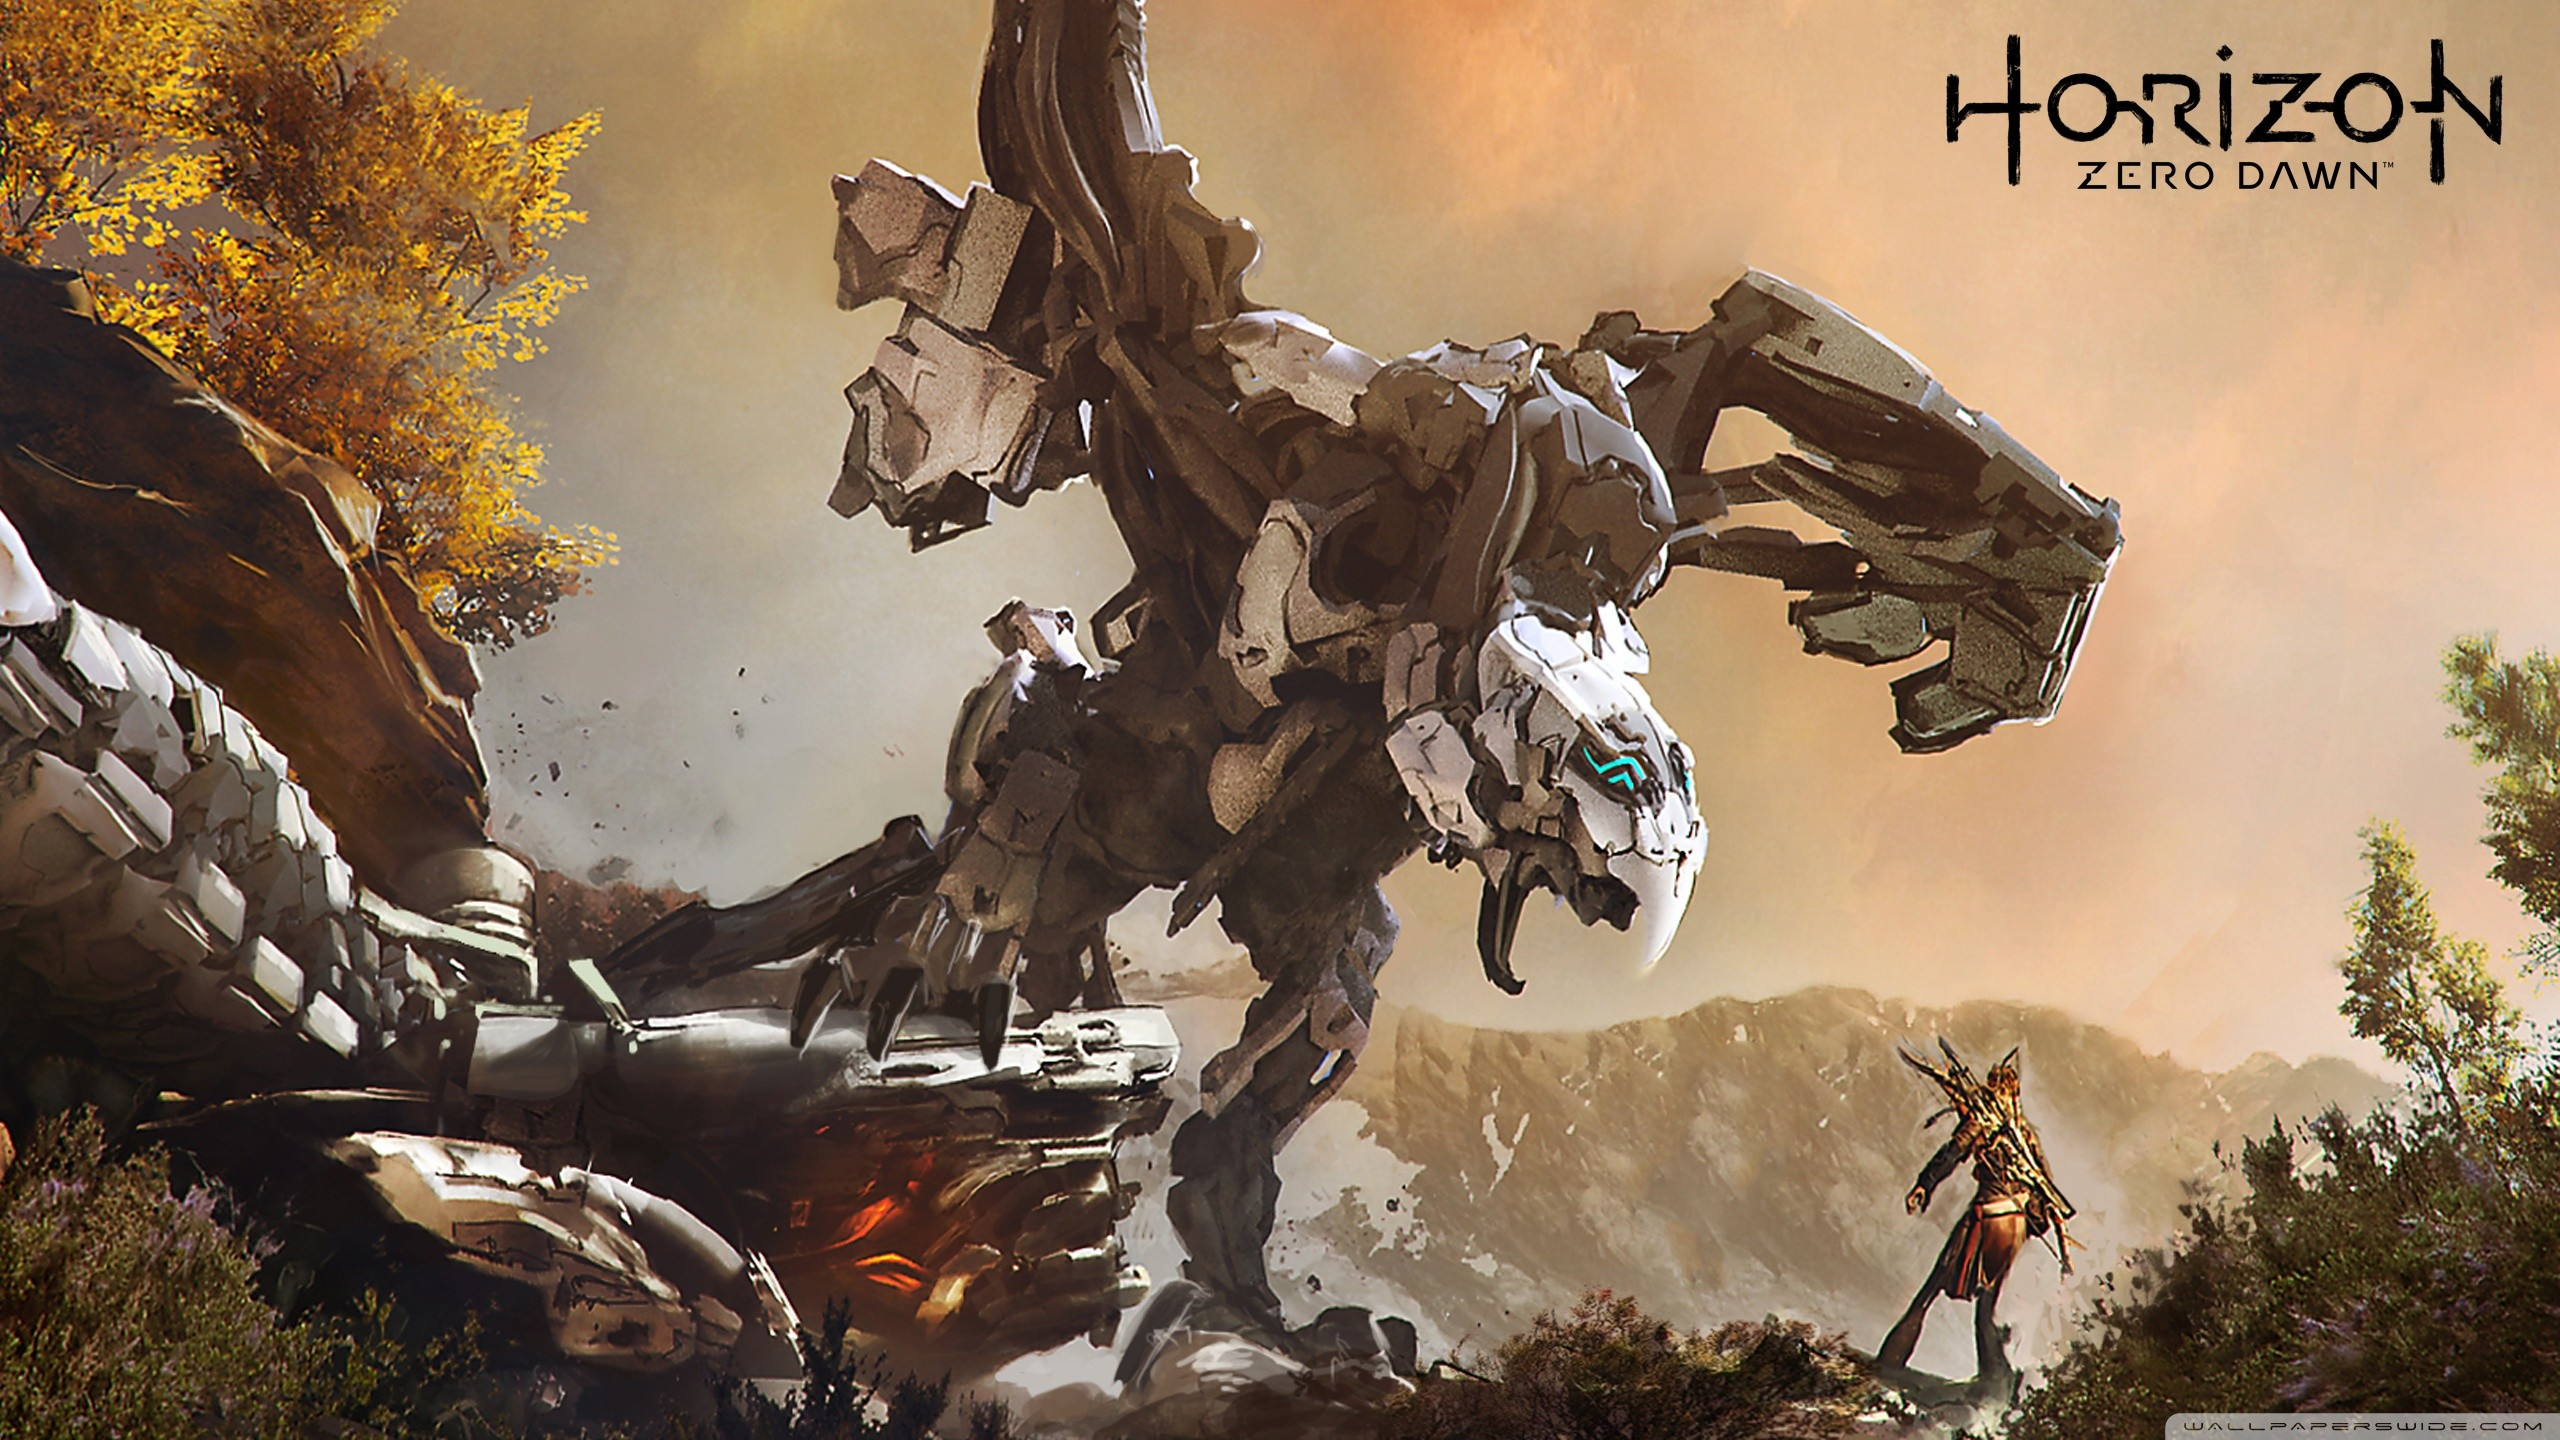 Horizon zero dawn wallpapers 84 images - Horizon zero dawn android wallpaper ...